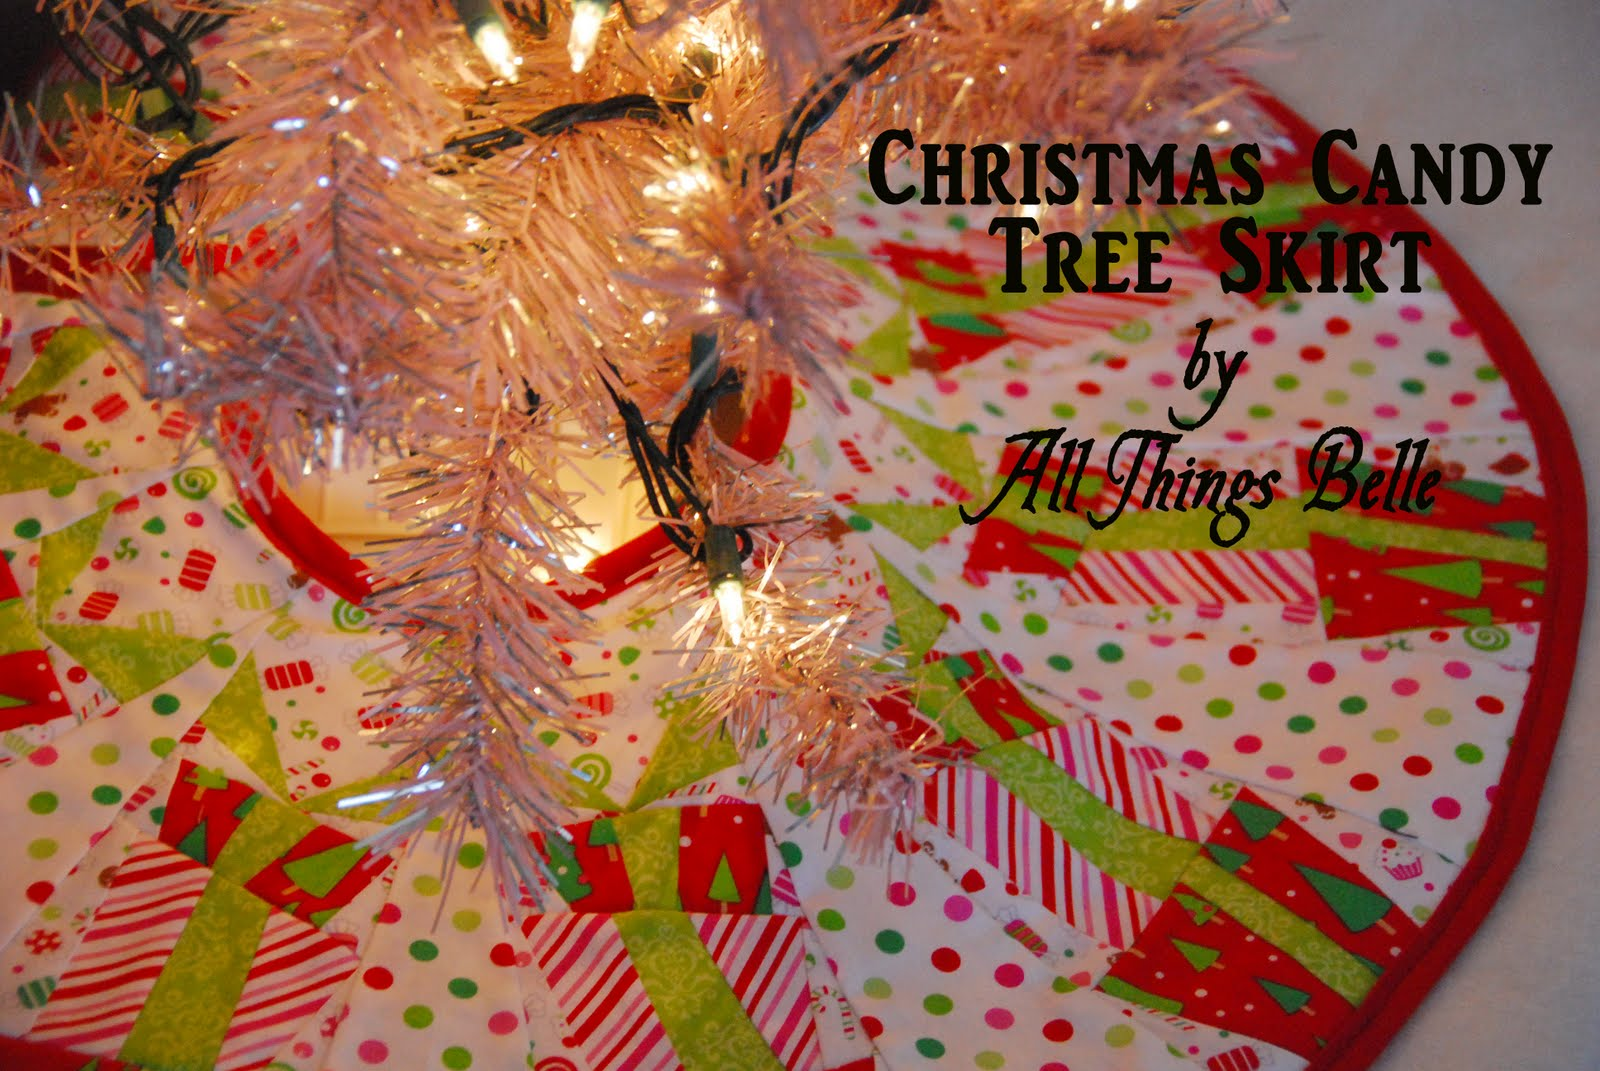 All Things Belle: Christmas Candy Tree Skirt